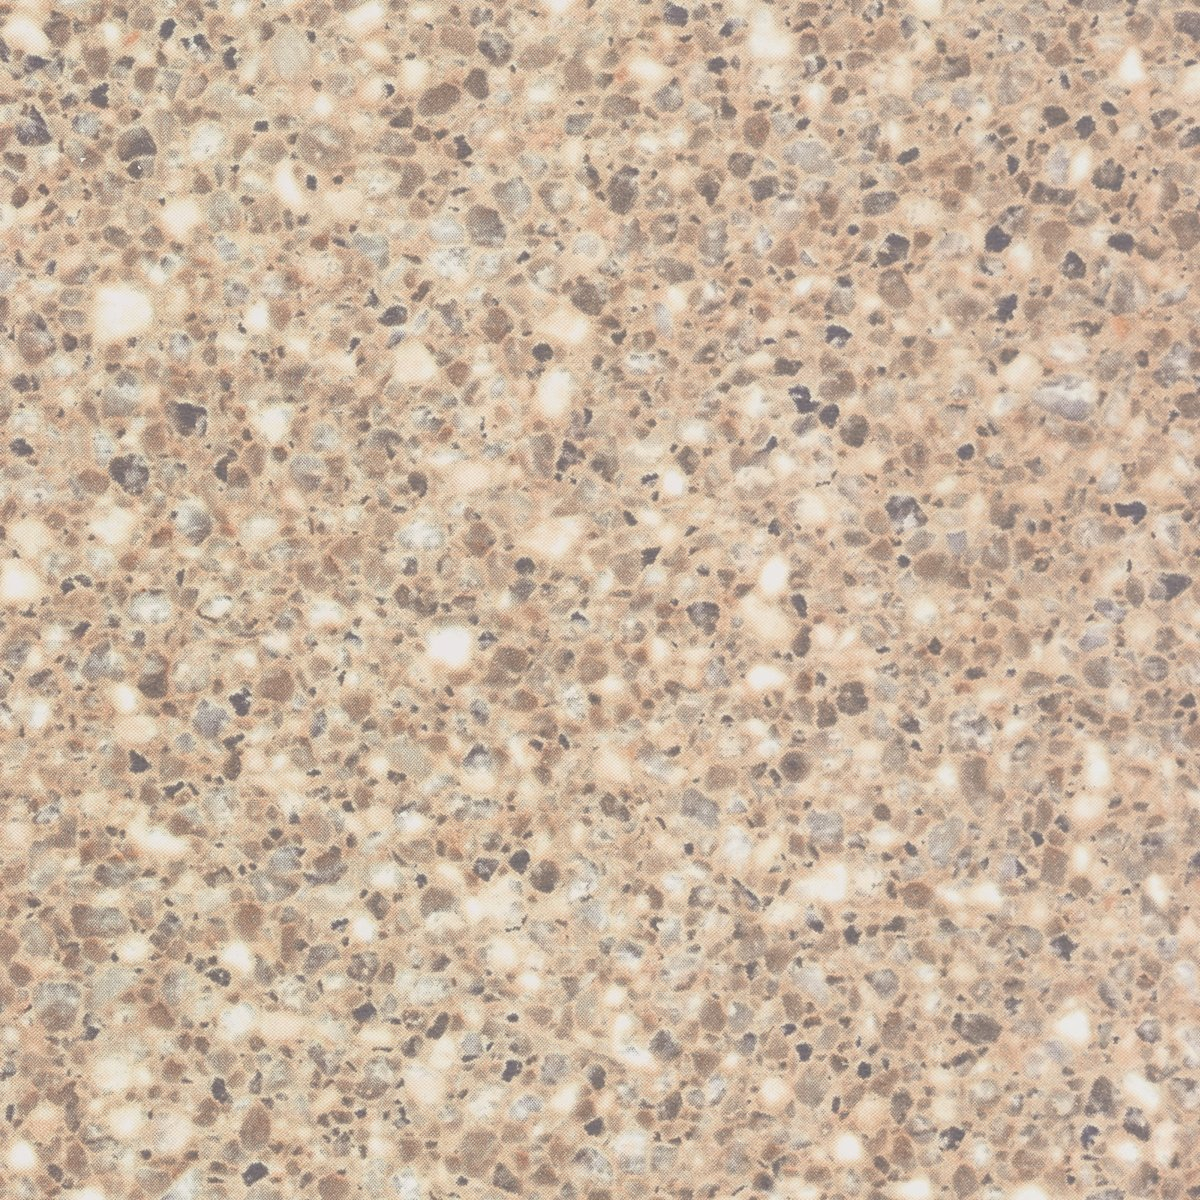 Formica Brand Laminate 035171246708000 Laminate, Sand Crystal